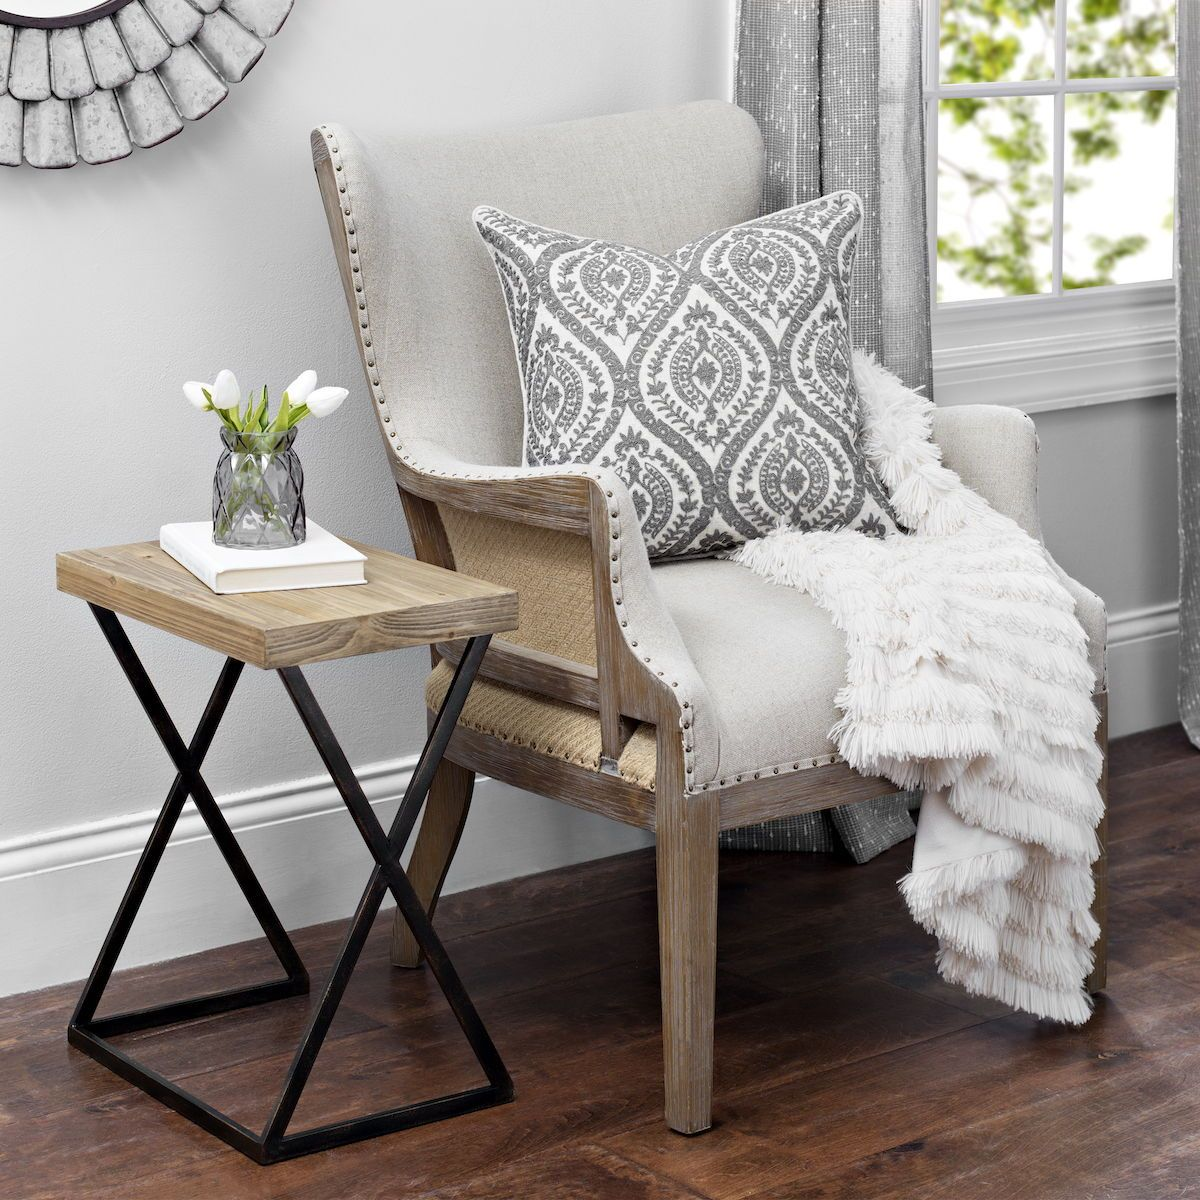 It S All In The Details That S We Why Love The Exposed Wood On This Accent Chair The Accent Chairs For Living Room White Accent Chair Farmhouse Accent Chair